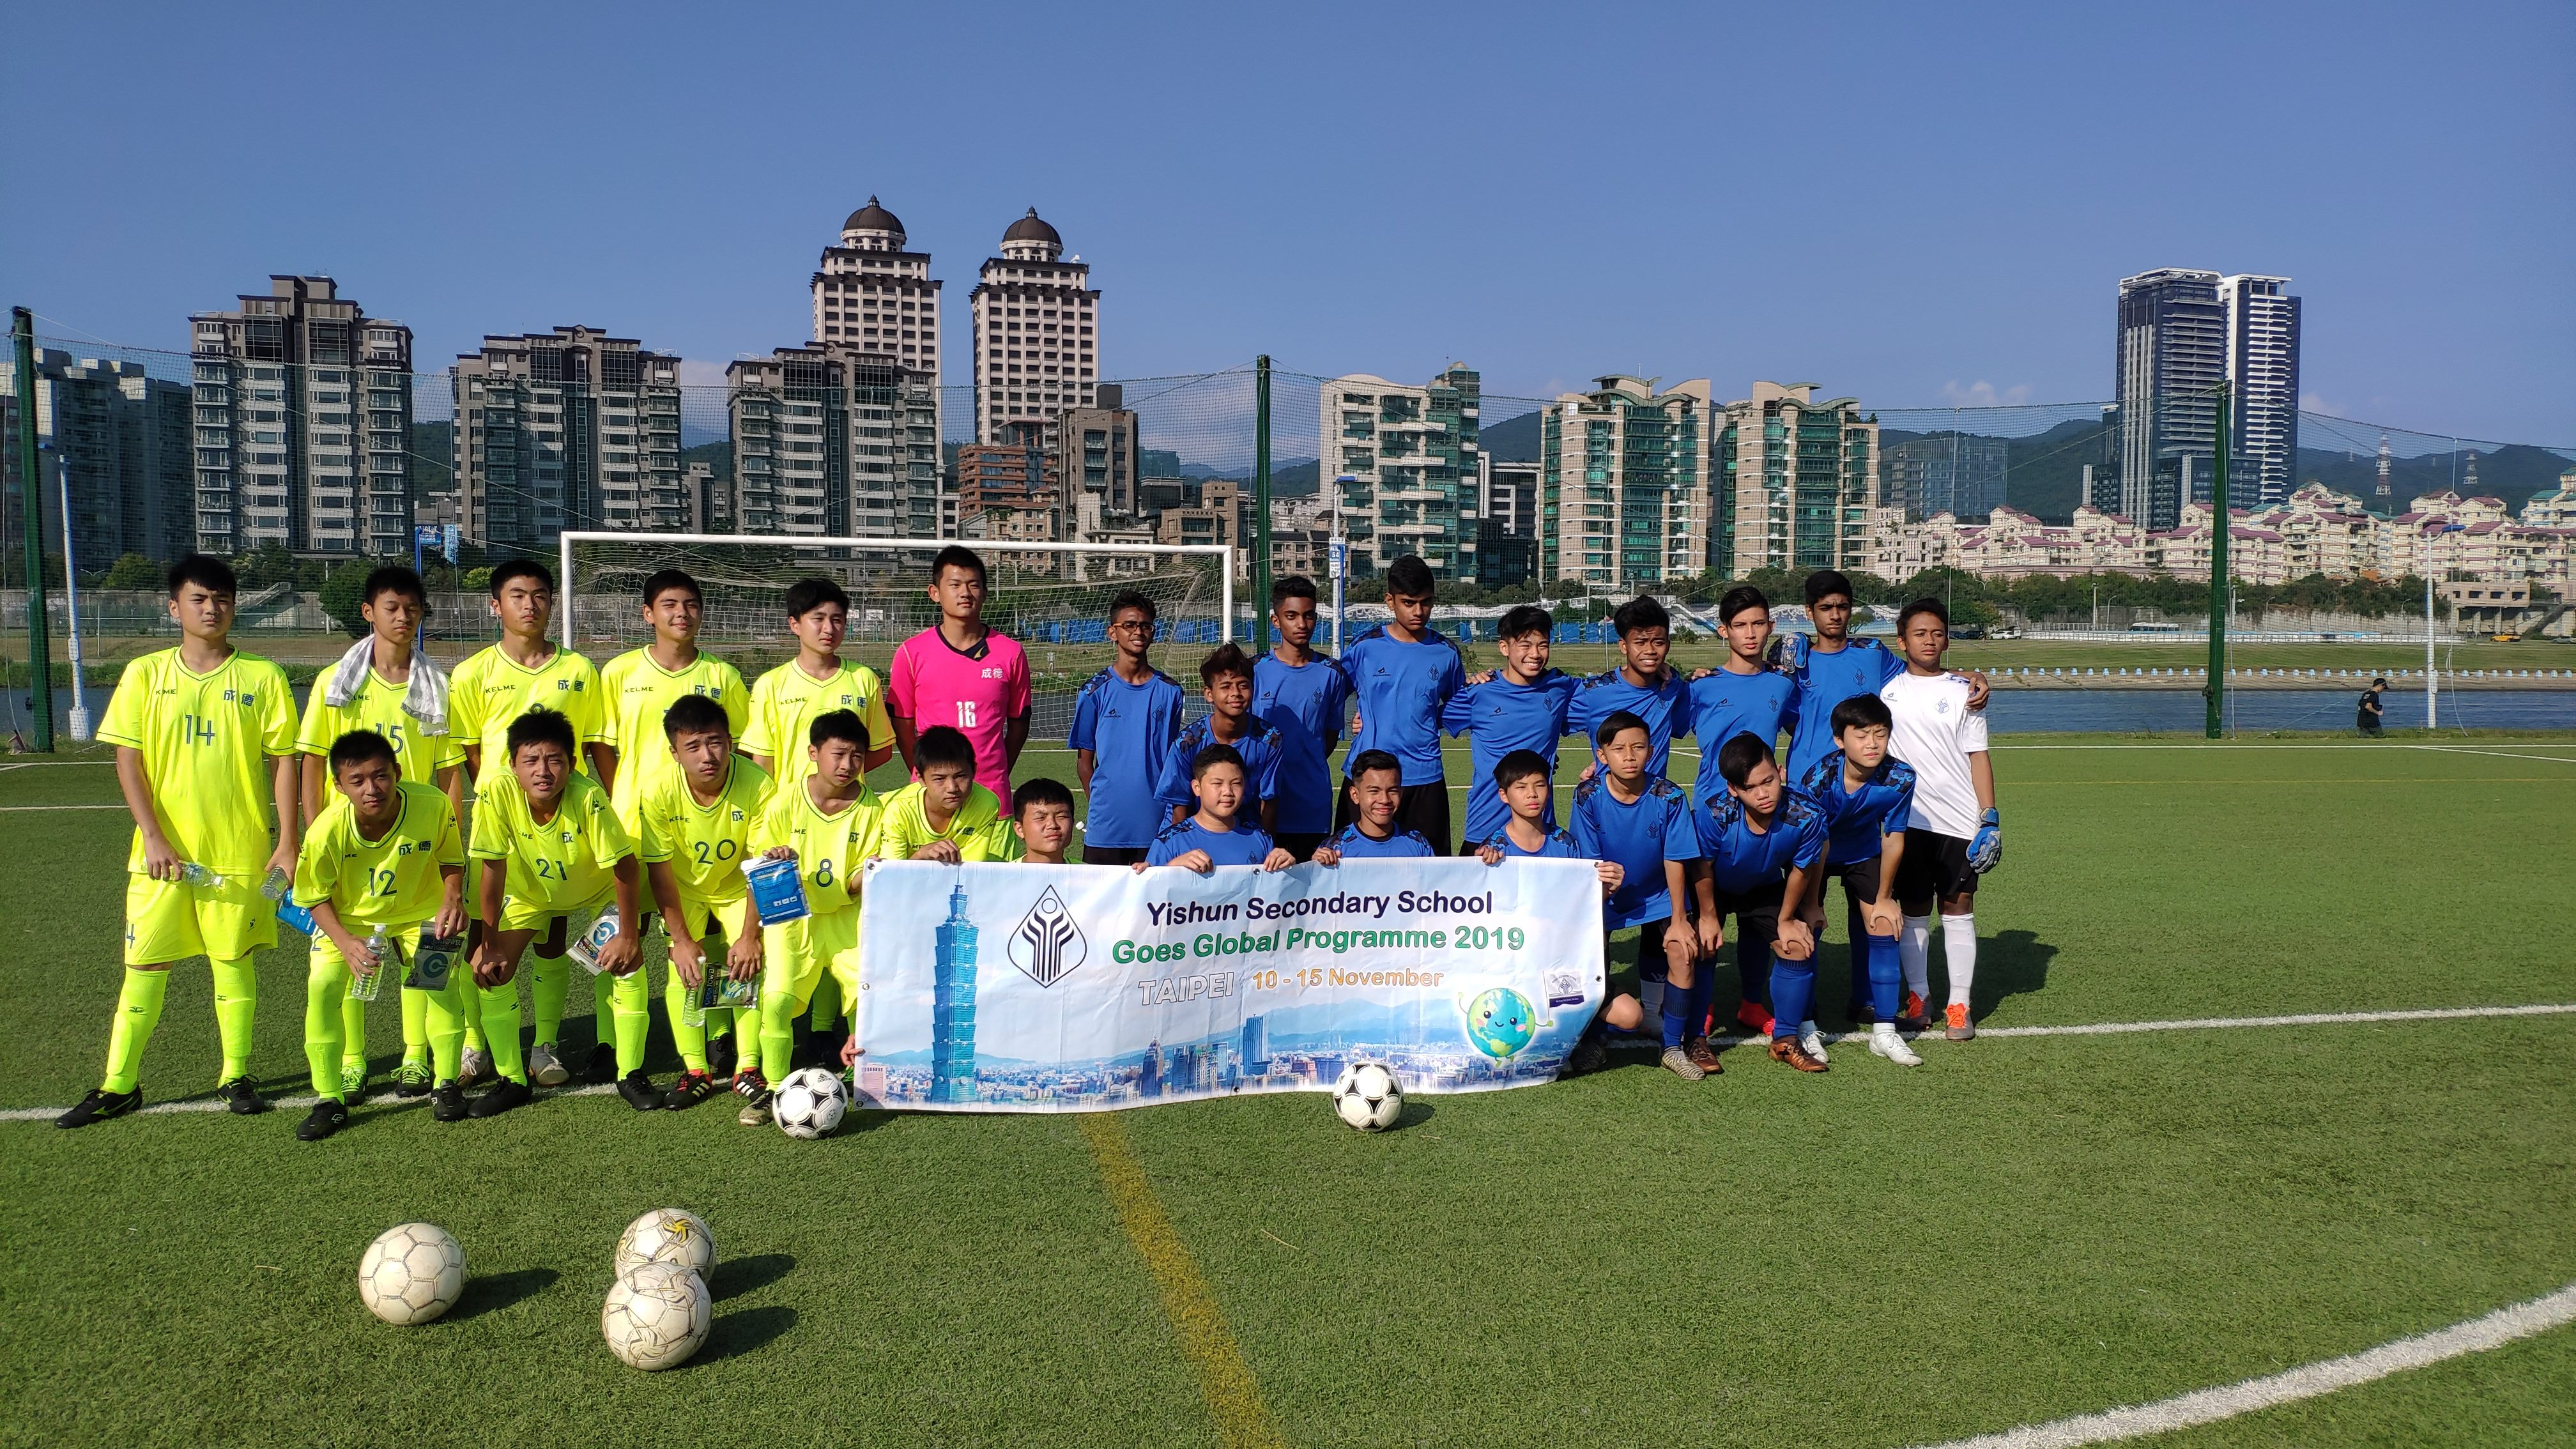 Students from Singapore test soccer skills with their local counterparts